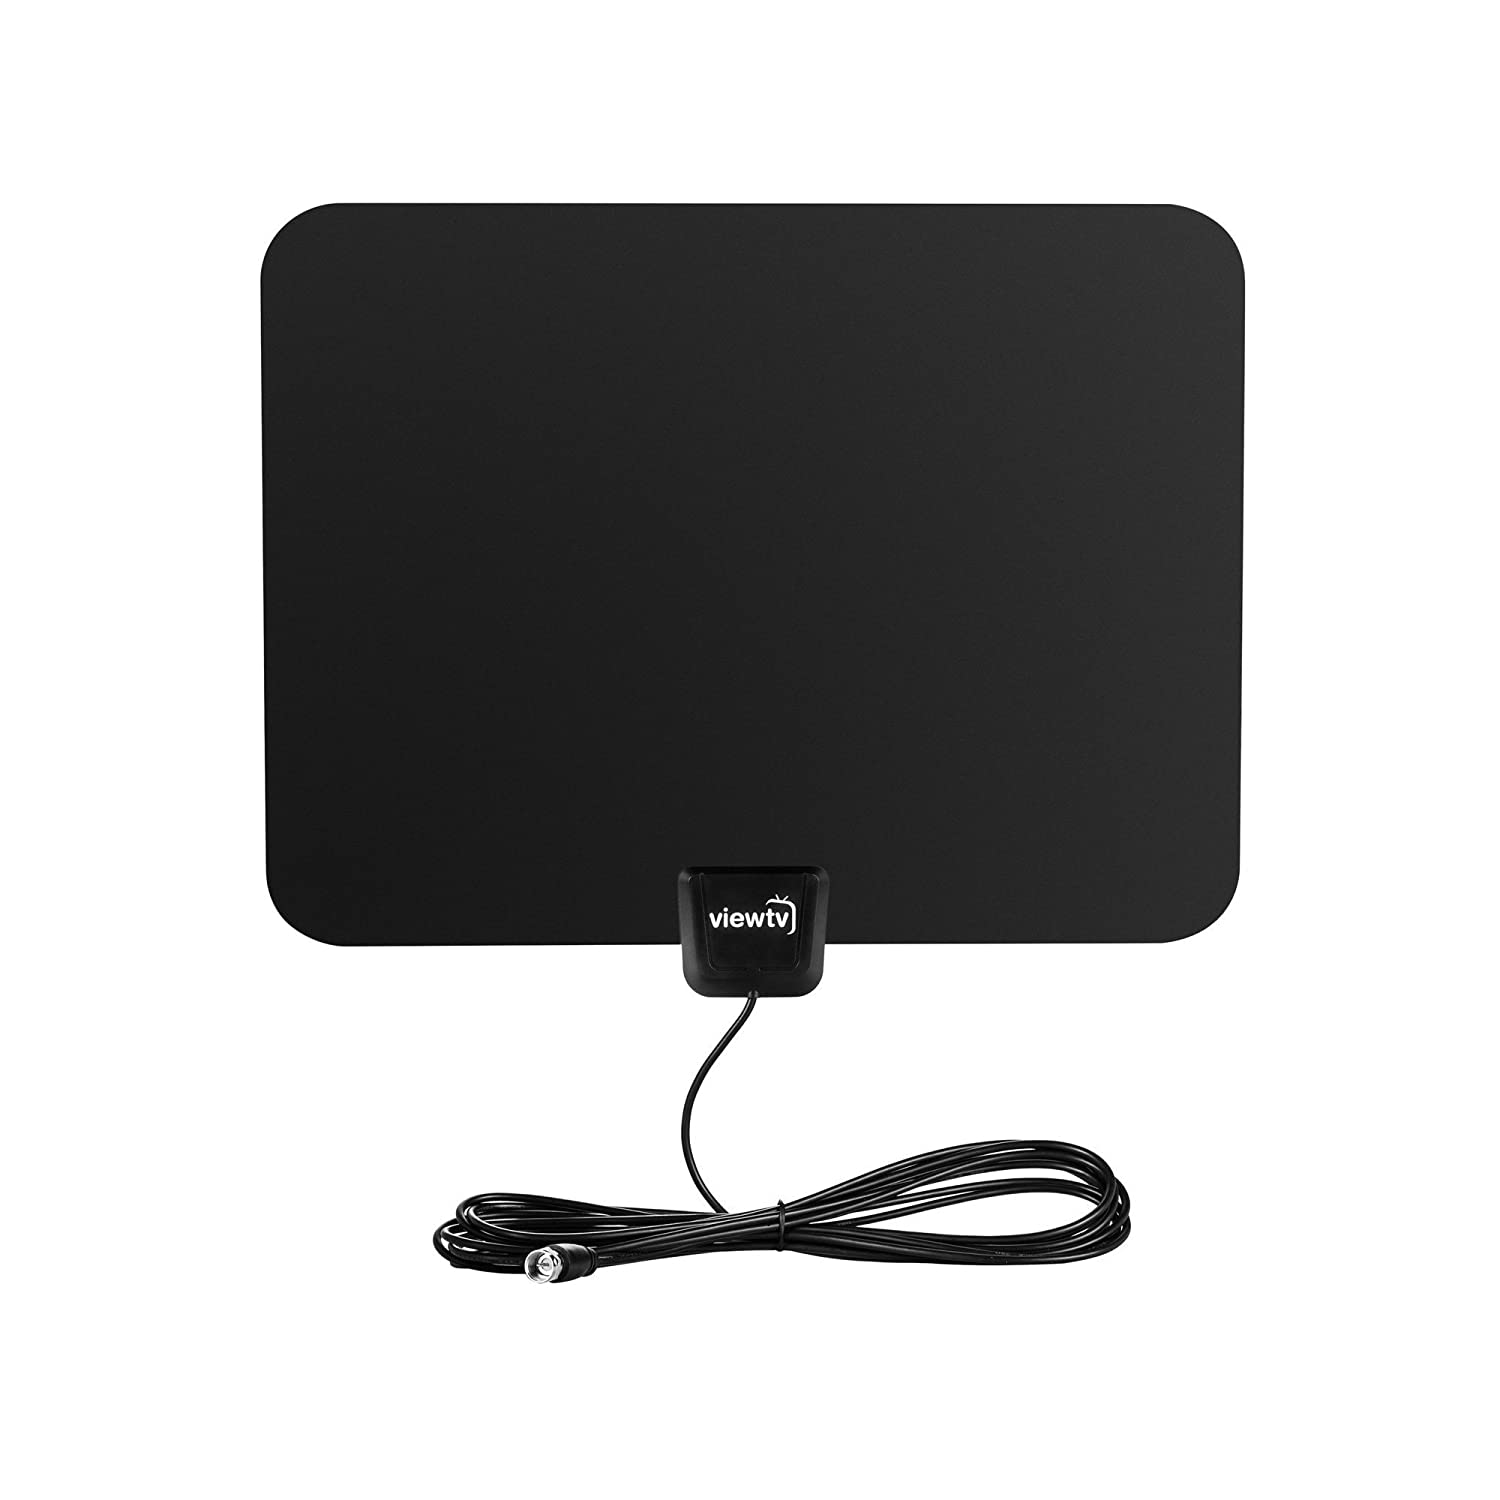 ViewTV Flat HD Digital Indoor Amplified TV Antenna - 50 Miles Range - Detachable Amplifier Signal Booster - 12ft Coax Cable - Black 4330082288